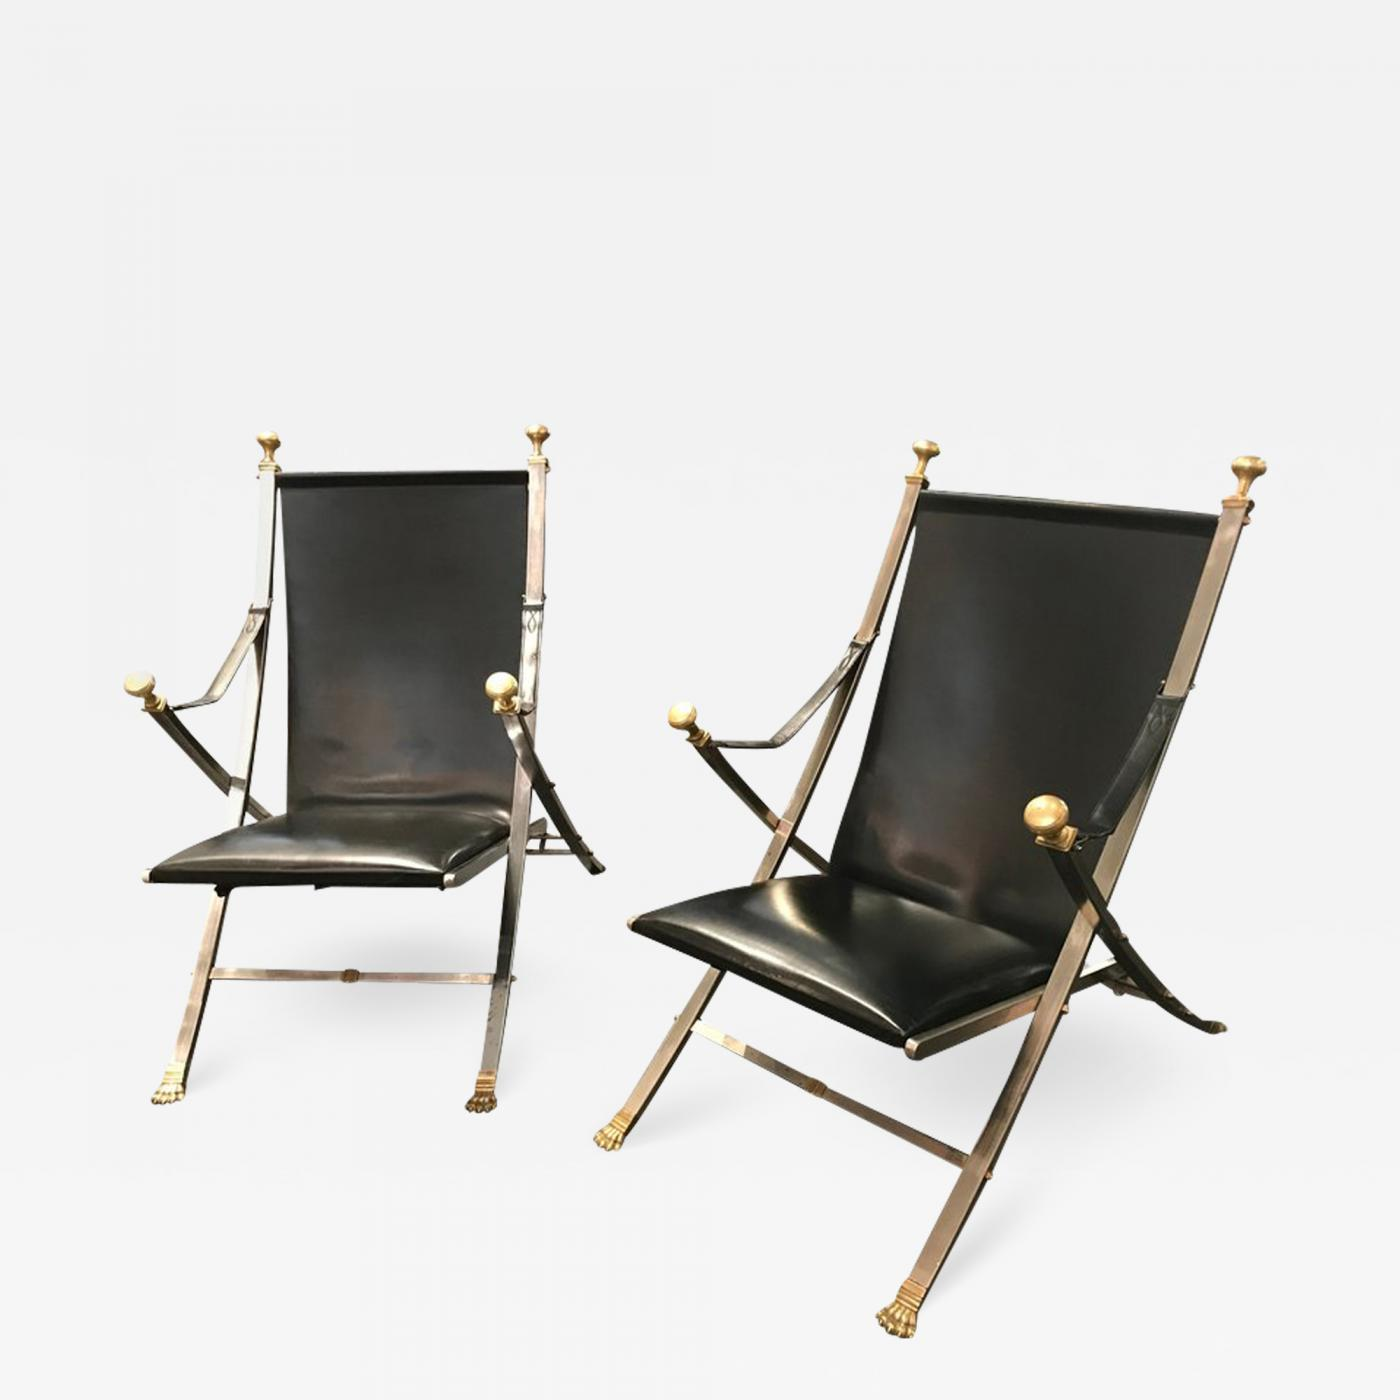 Pair of polished steel and leather folding chairs in the style of Maison Jansen